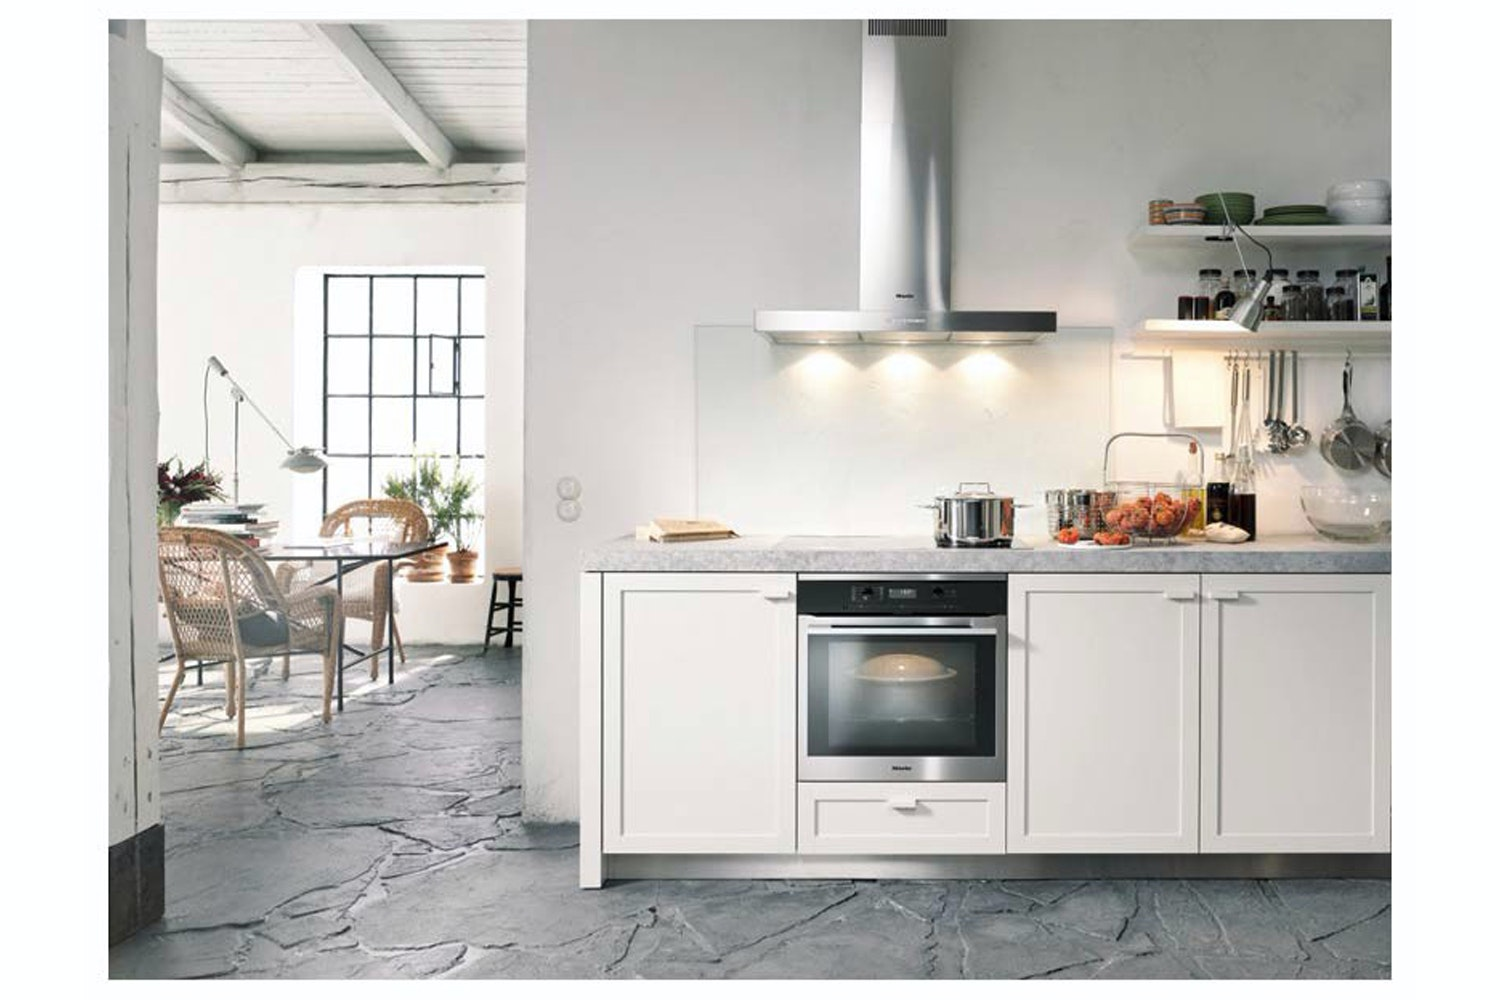 Miele H 6160 B  Oven   with electronic clock and Moisture Plus for perfect cooking results